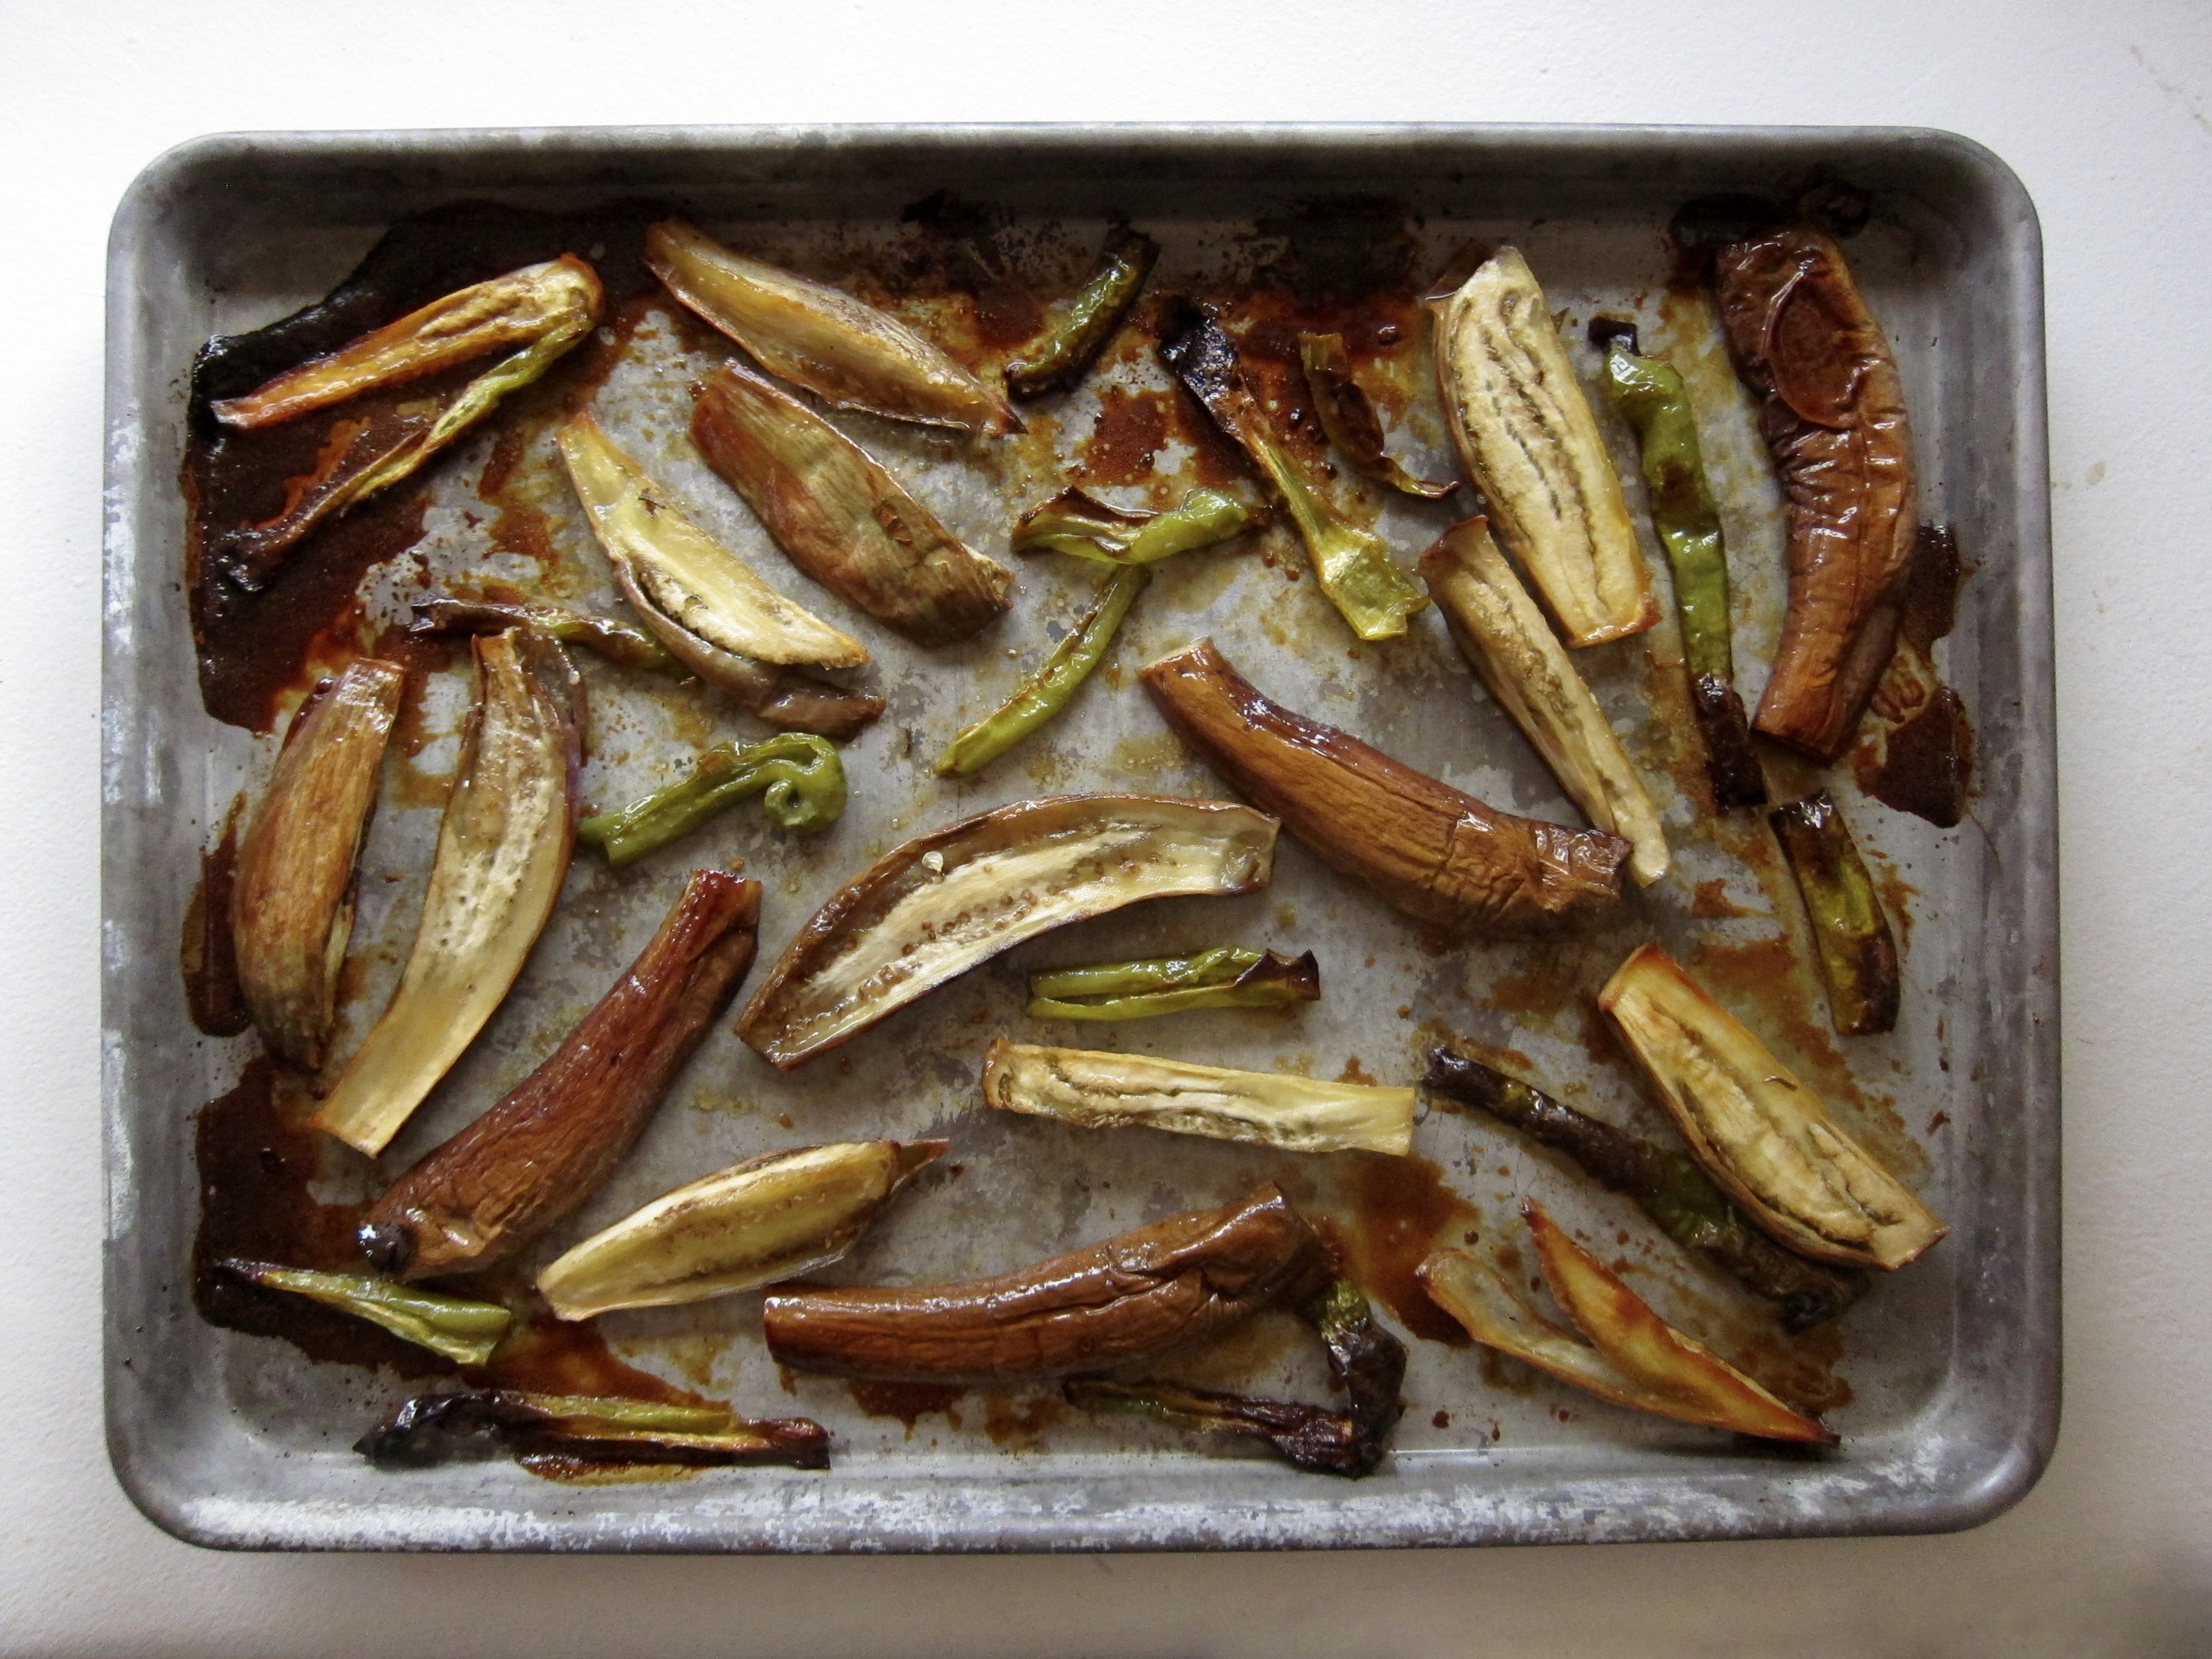 Eggplant roasted with green chile and honey is best when the eggplant is locally grown.